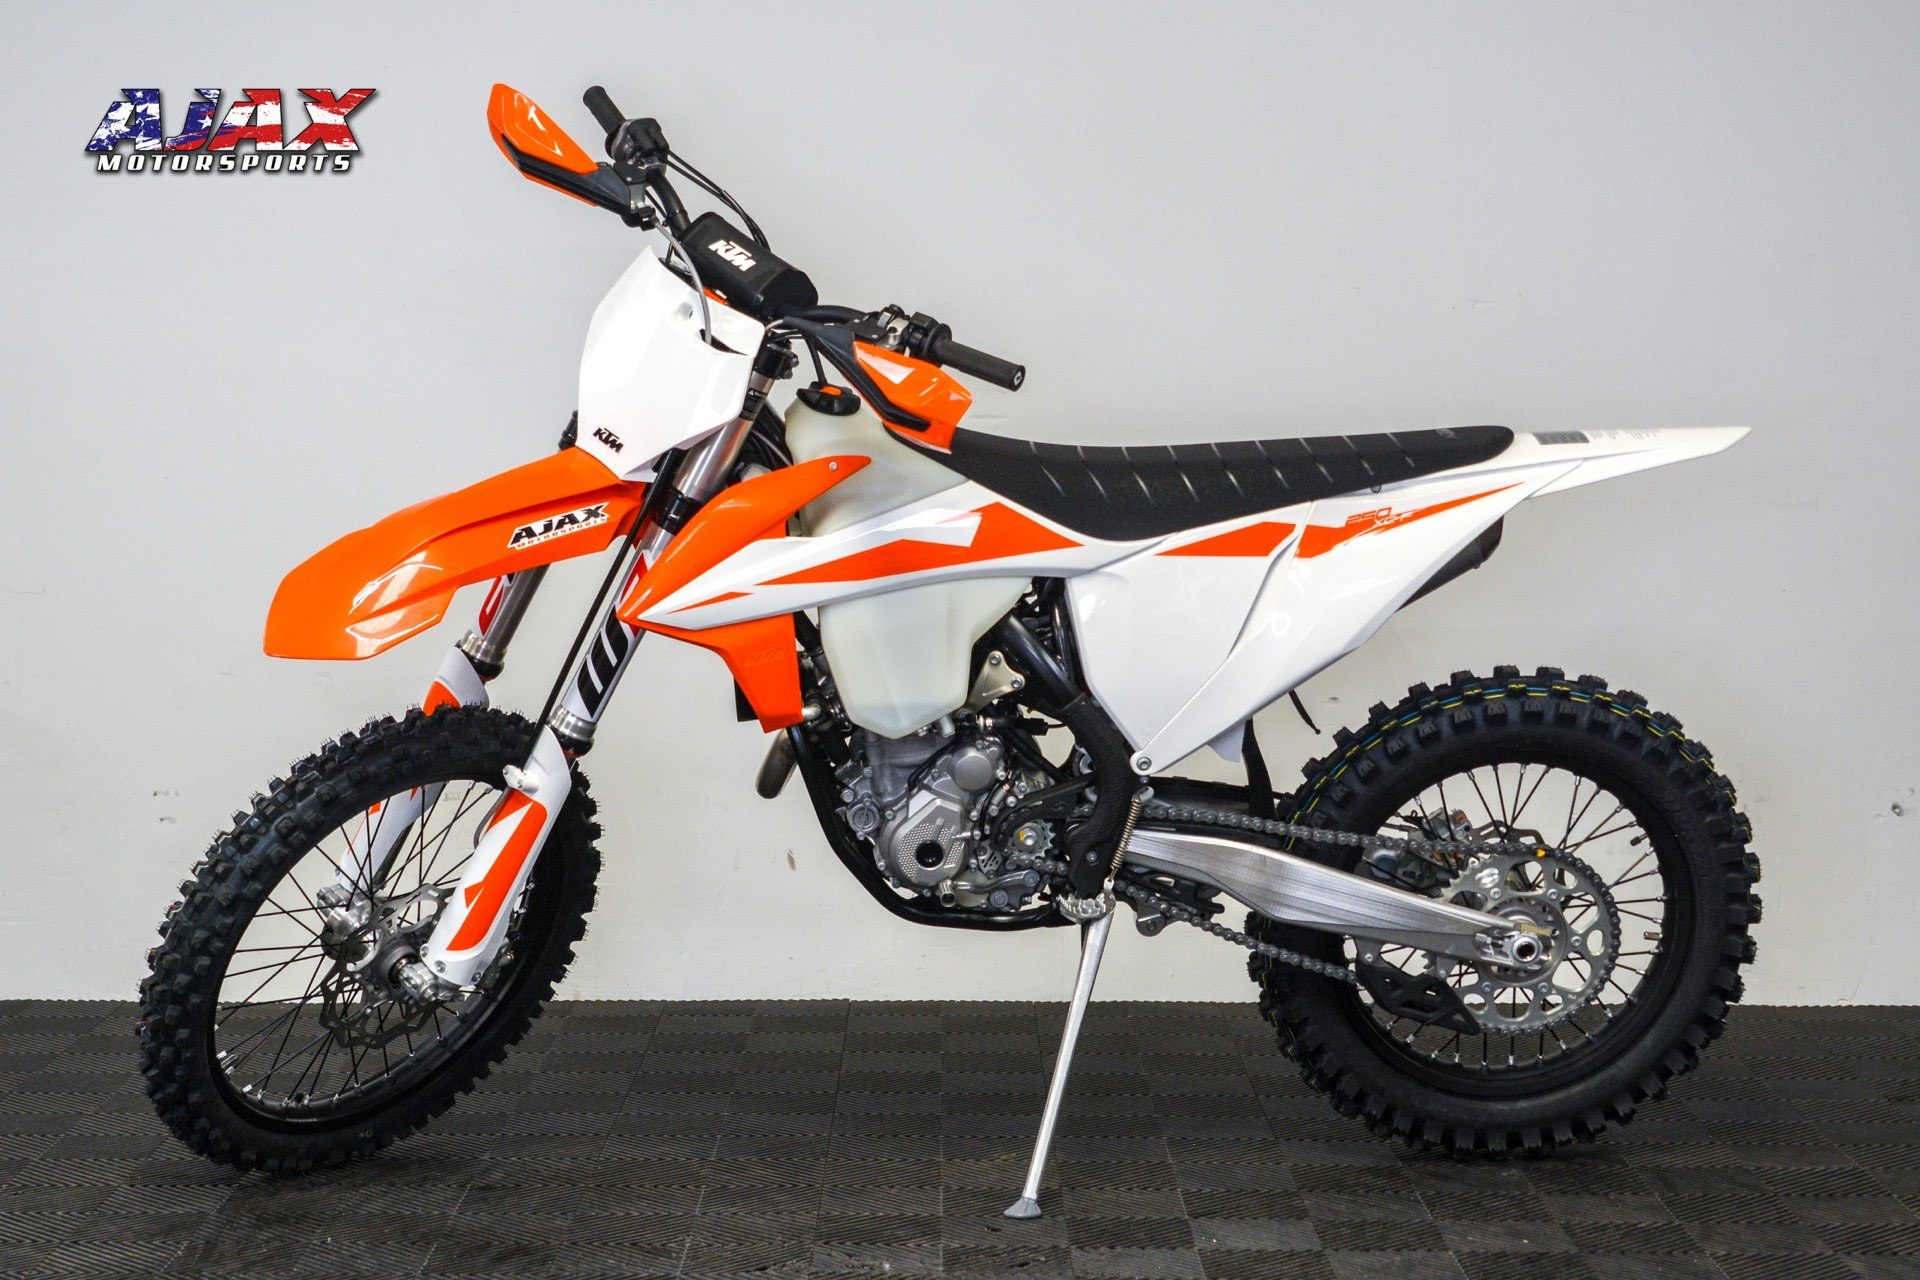 2019 KTM 250 XC-F for sale 2861